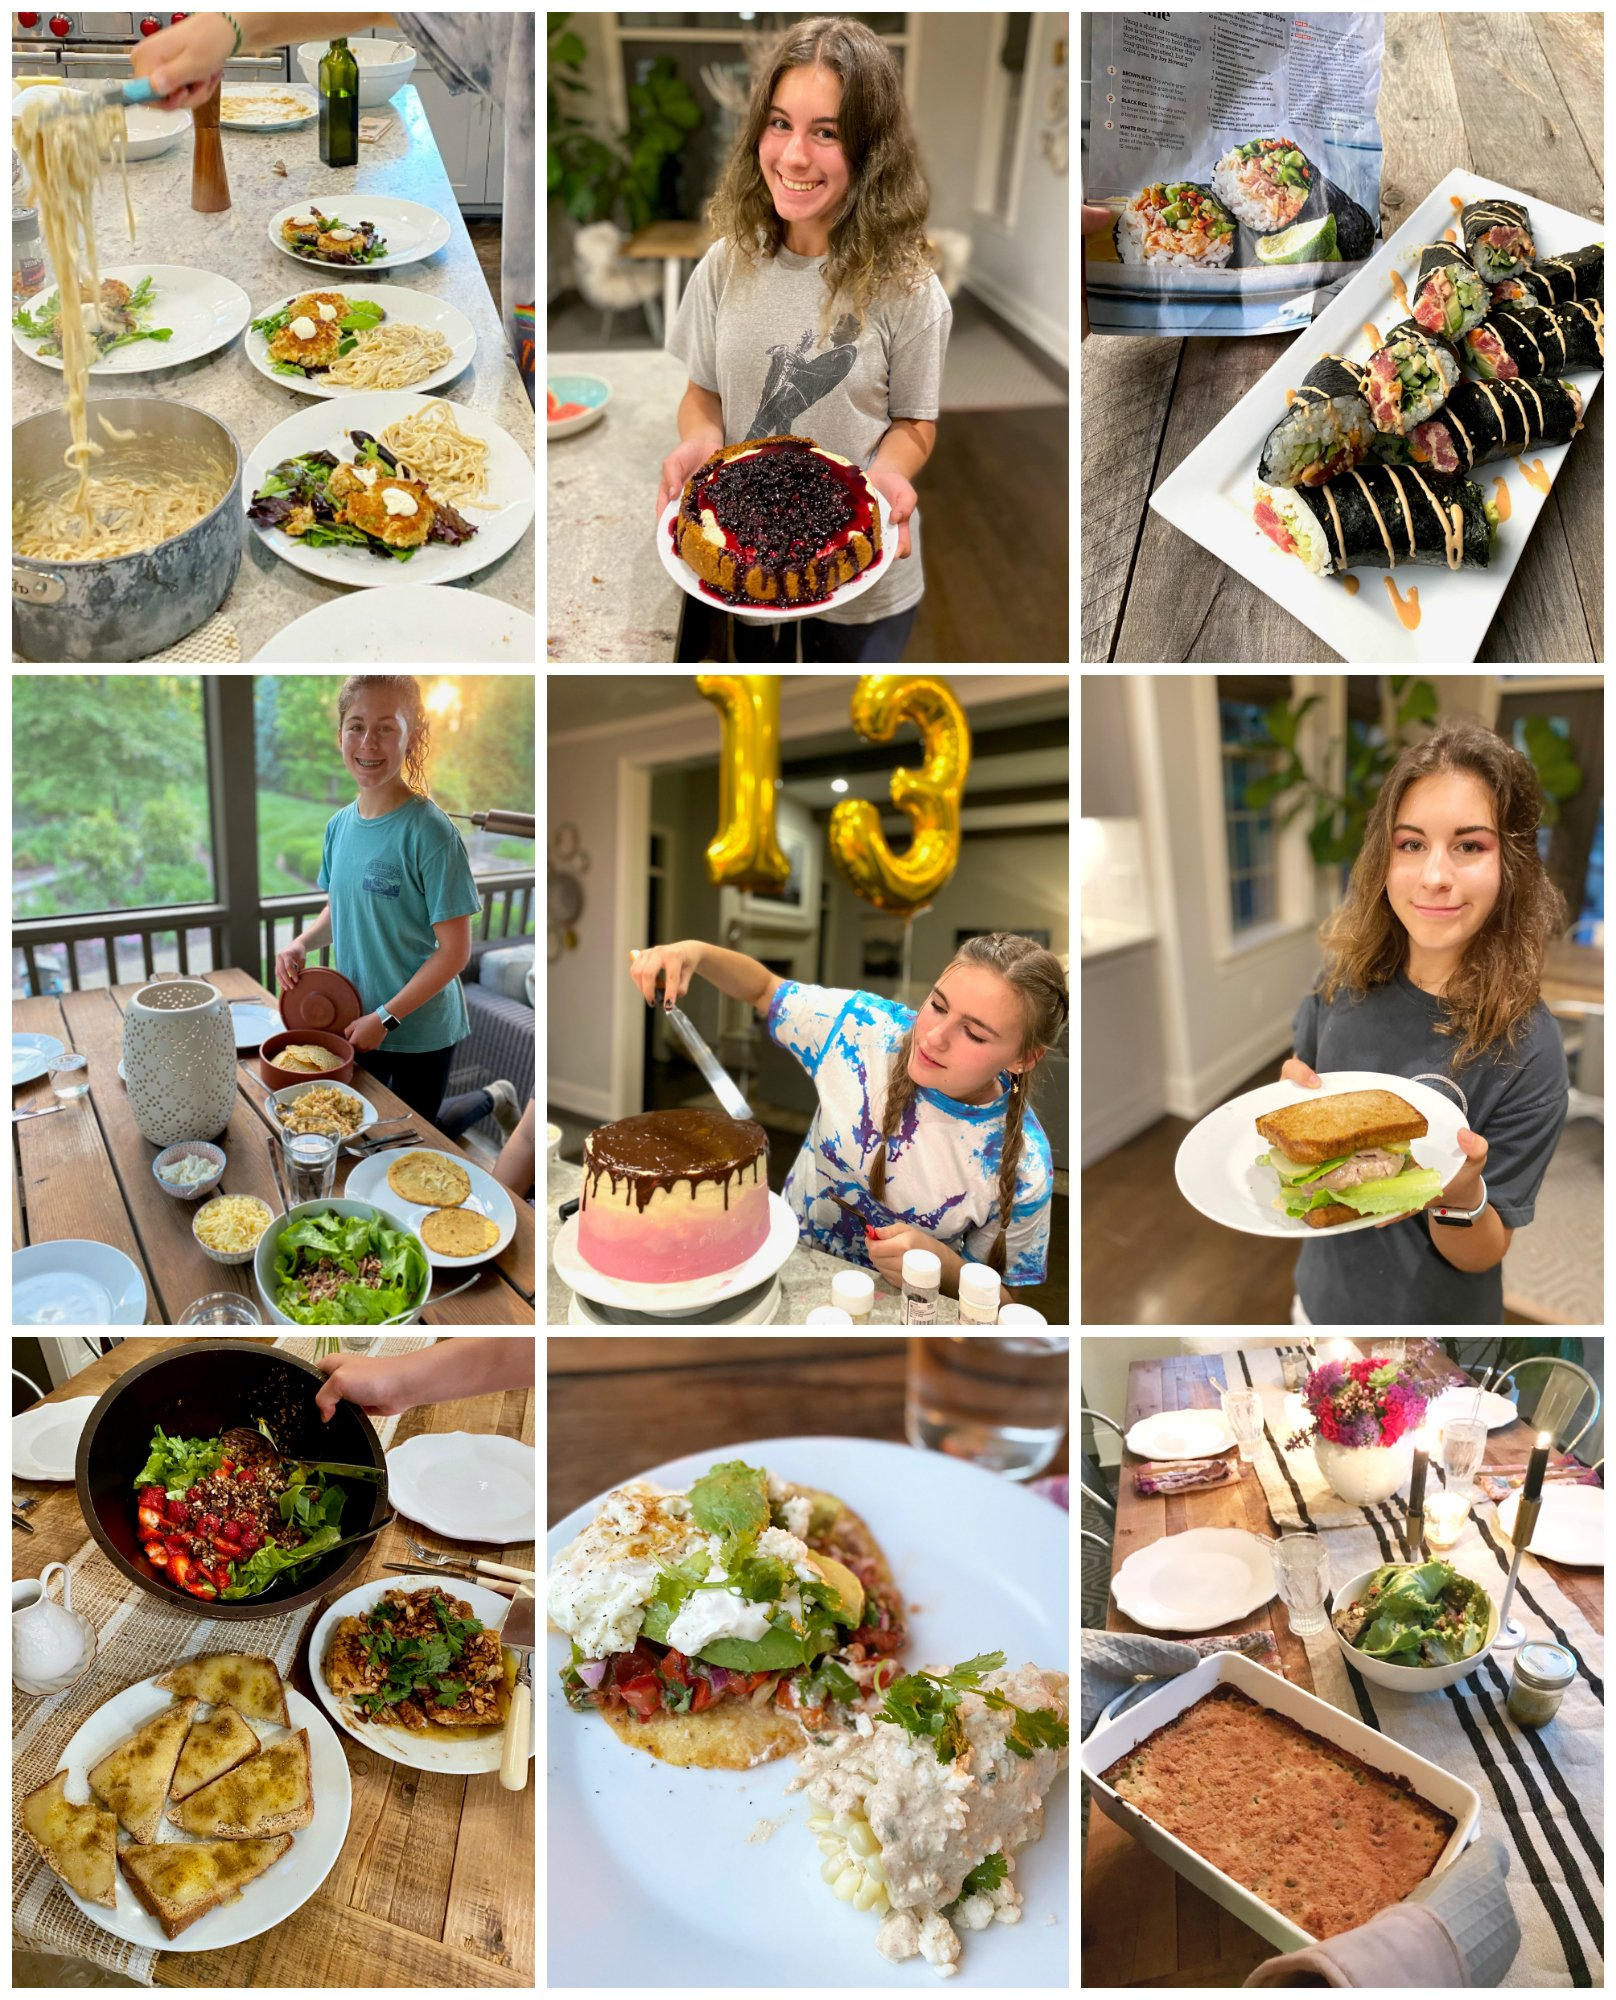 Dinners My Teens Cooked on 100 Days of Real Food